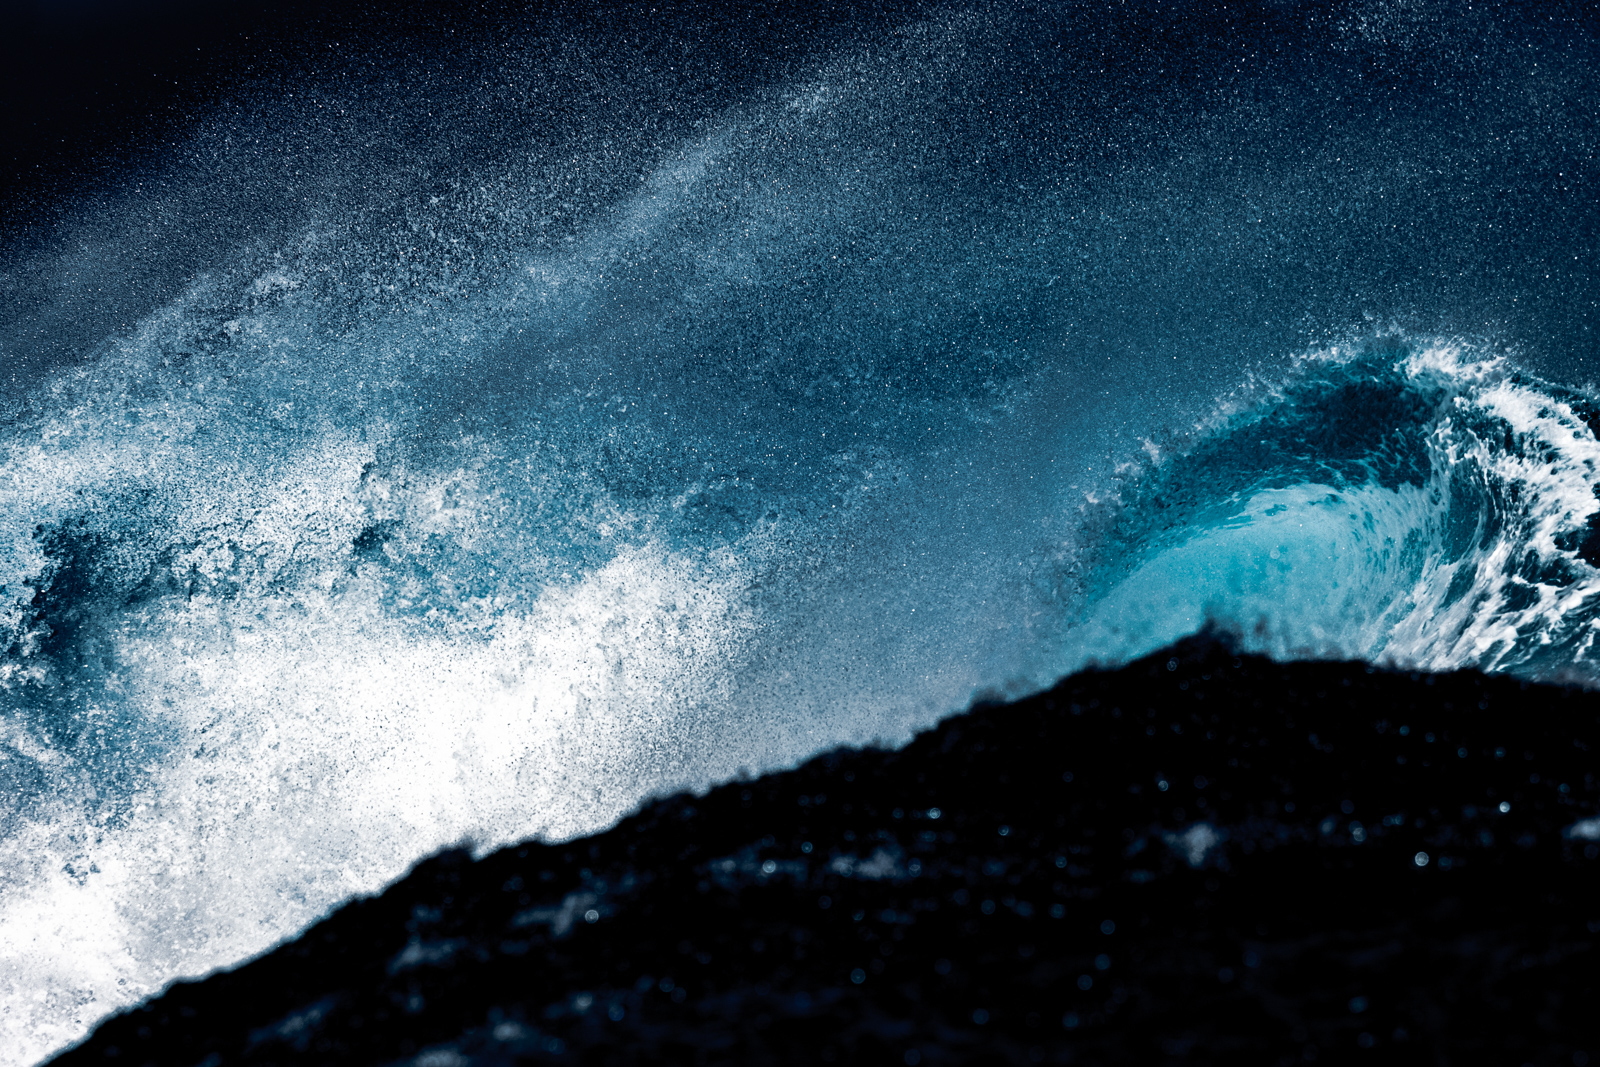 Electric - Captured at Teahupoo on 26 Aug, 2015 by SurfLove